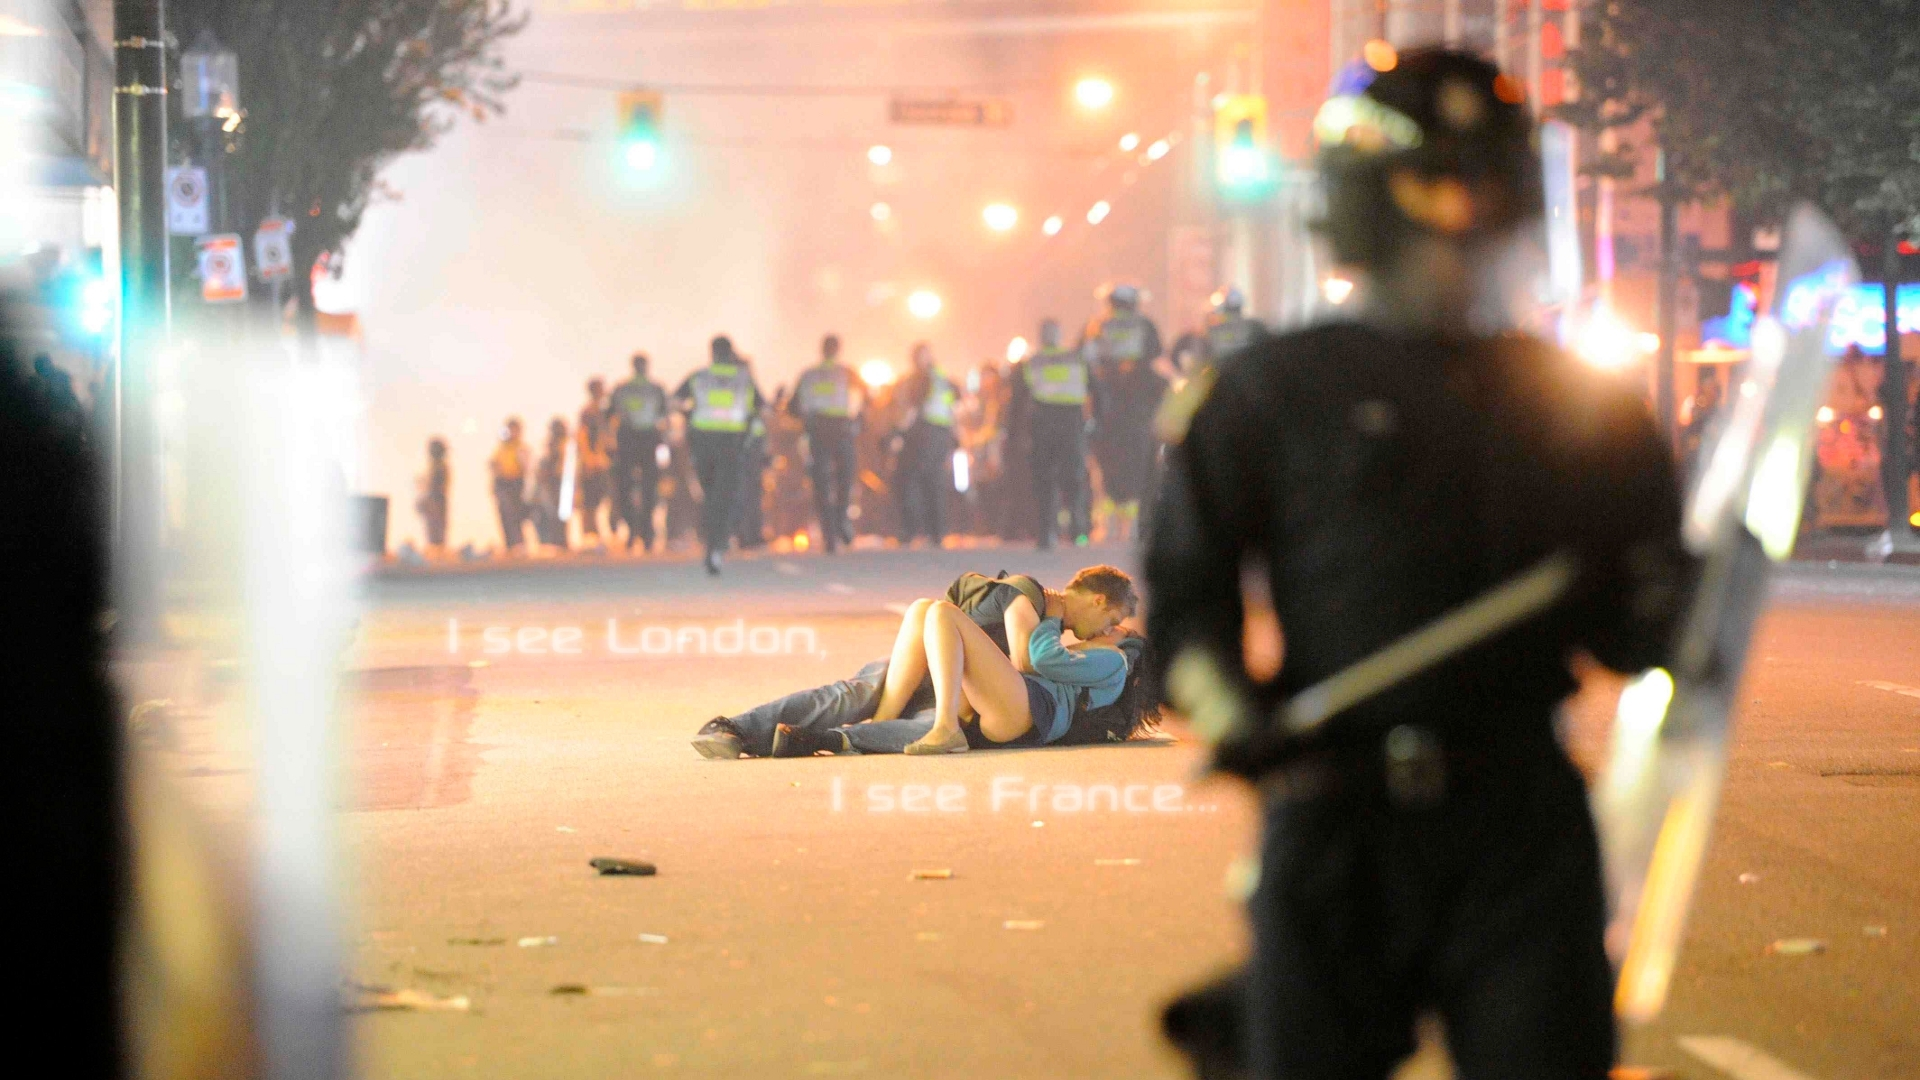 panties riots kissing vancouver HD Wallpaper